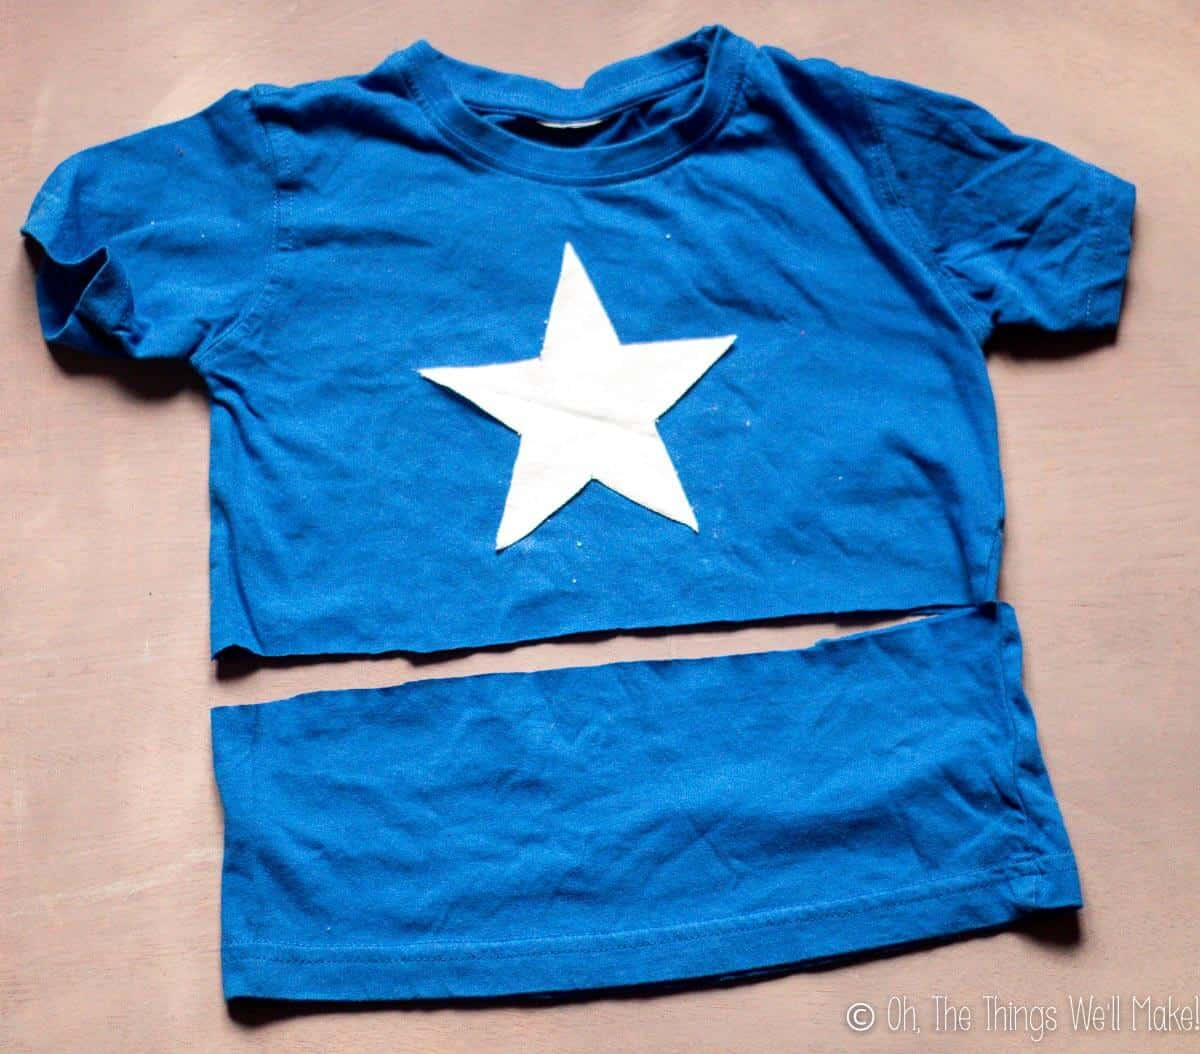 photo of where to cut the t-shirt in order to make a Captain America shirt